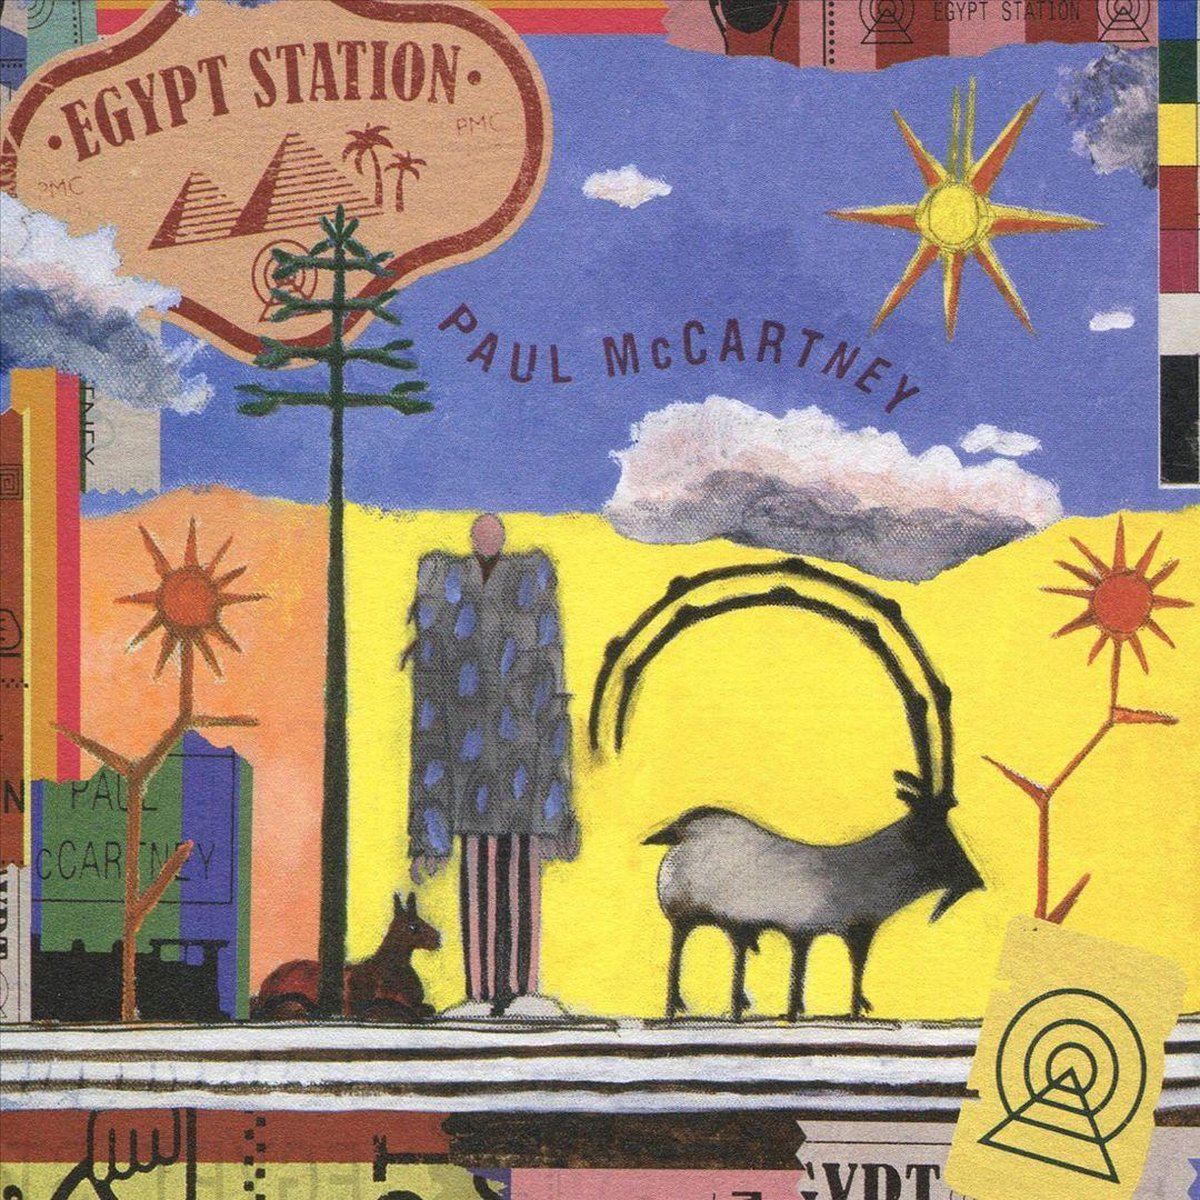 Egypt Station (Limited Edition) (LP) - Paul McCartney